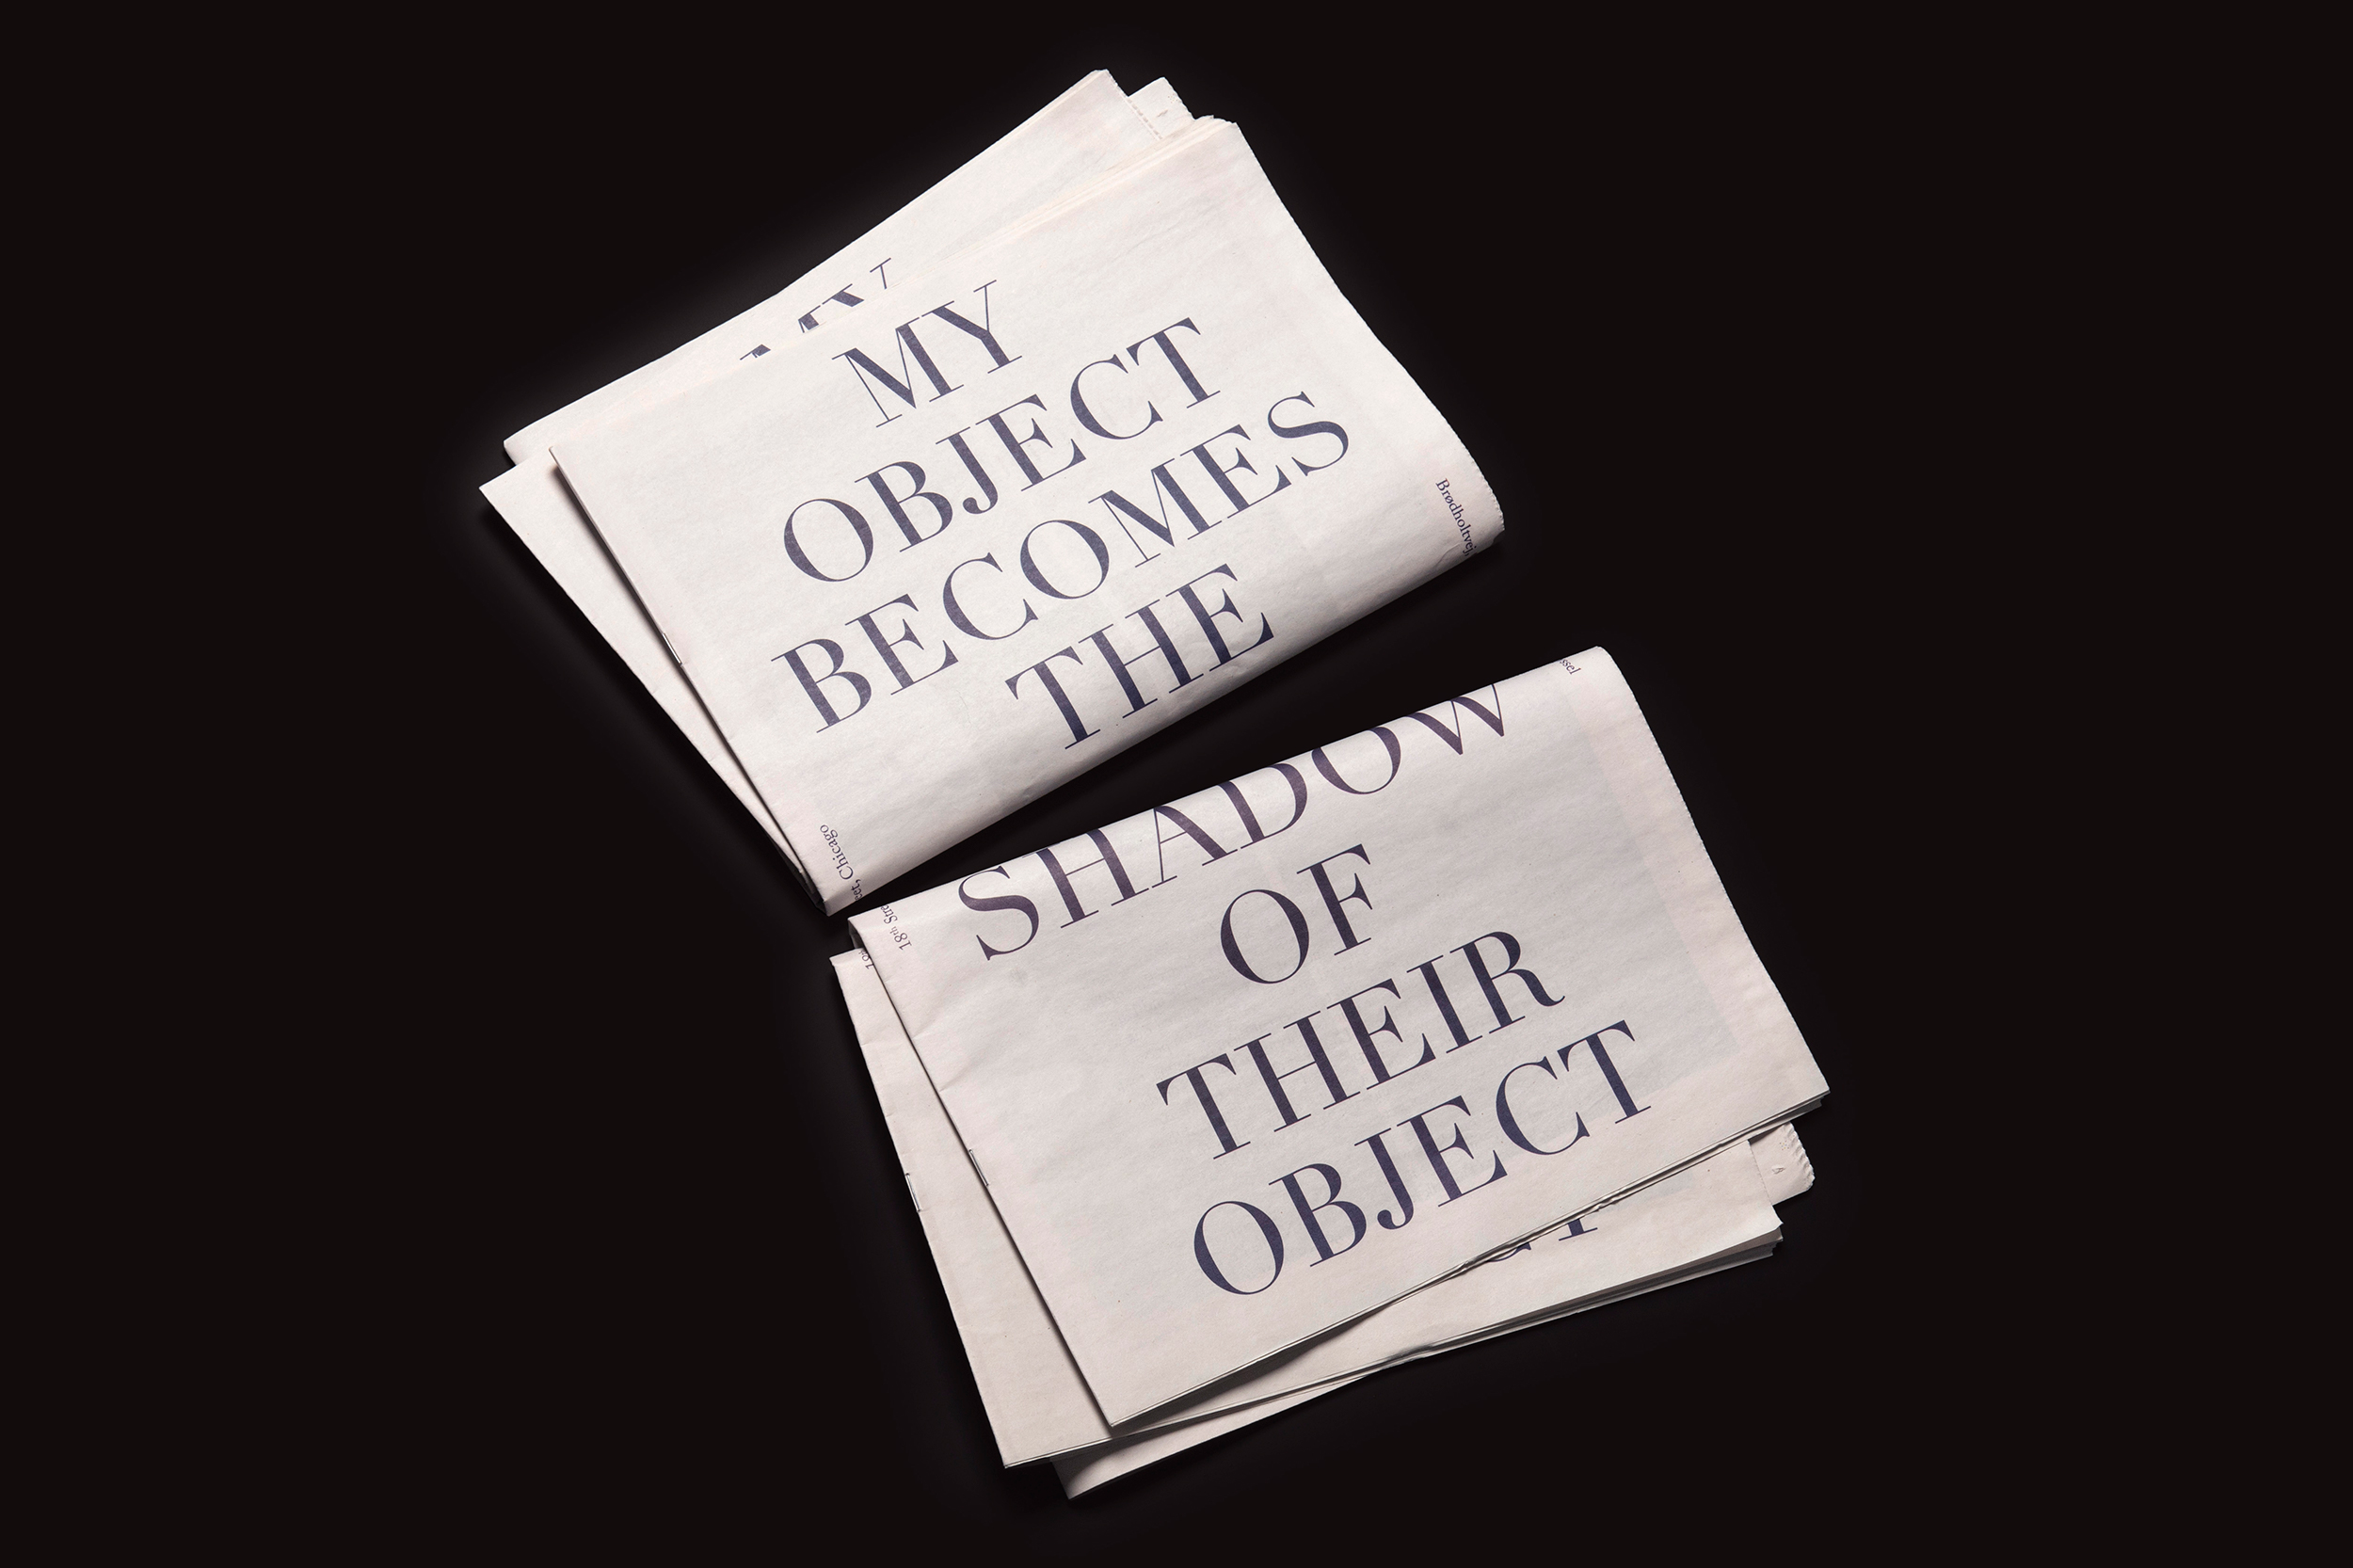 My Object Becomes The Shadow Of Their Object